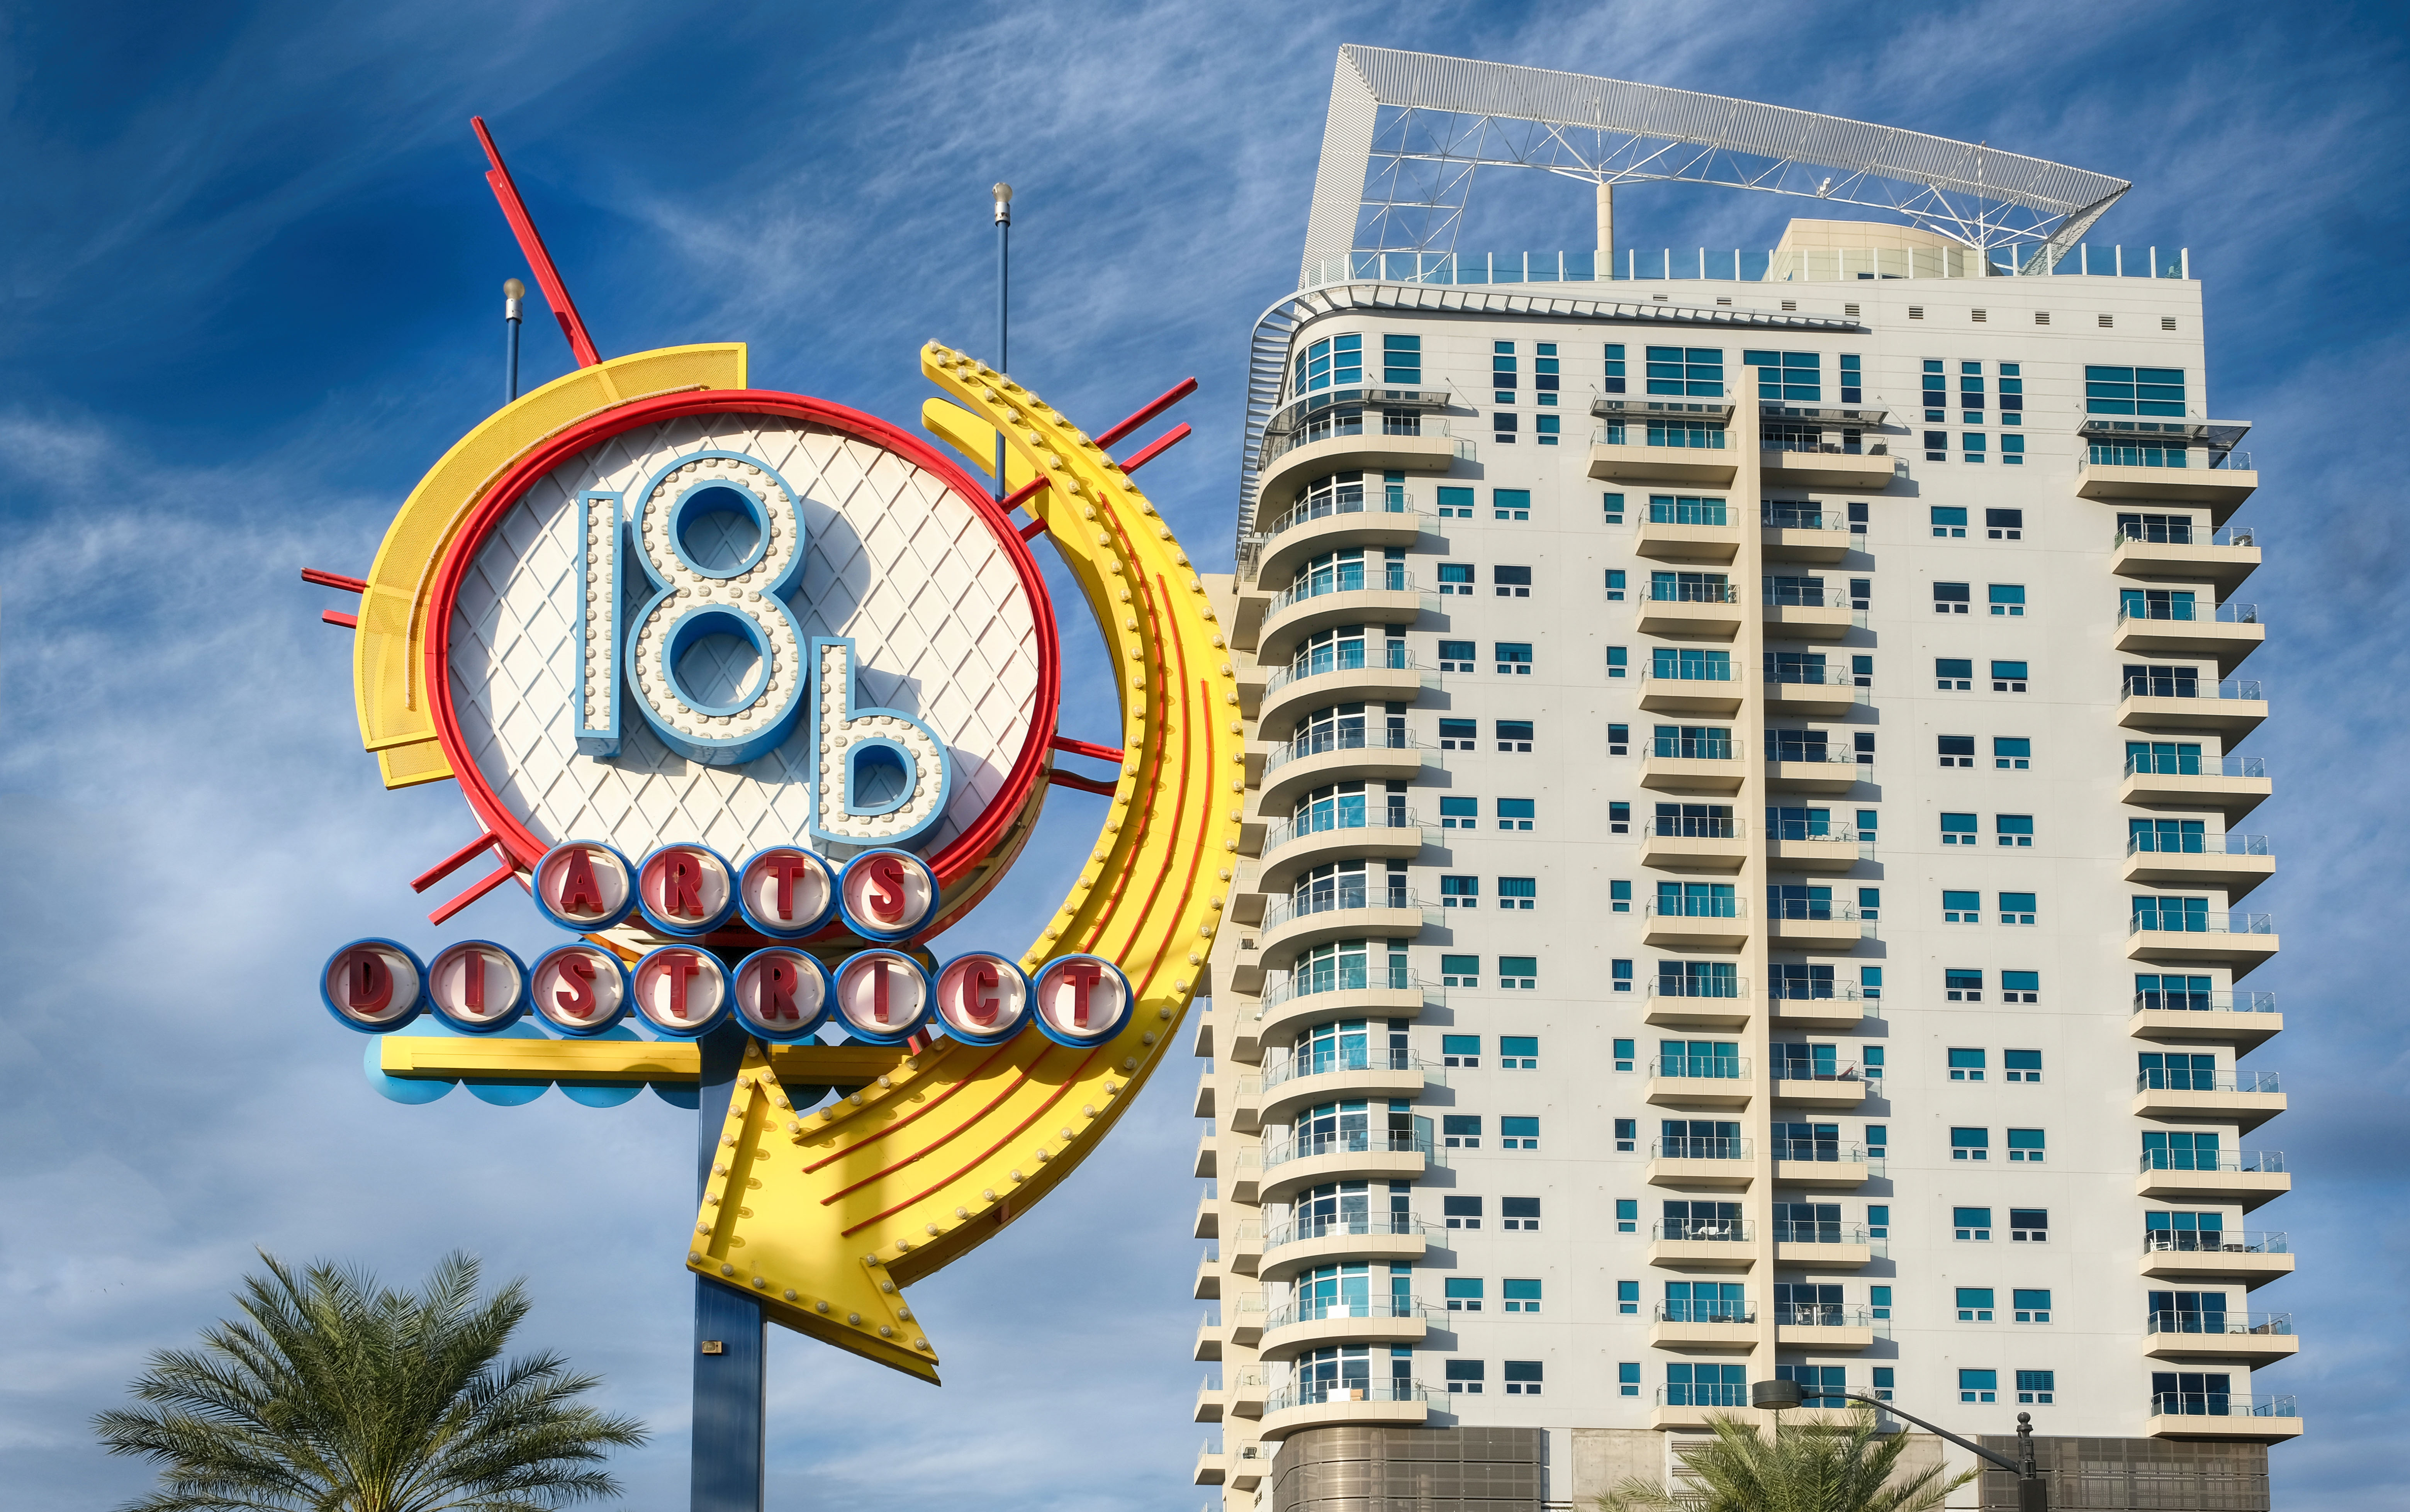 A sign with the word 18B in front of a high-rise building